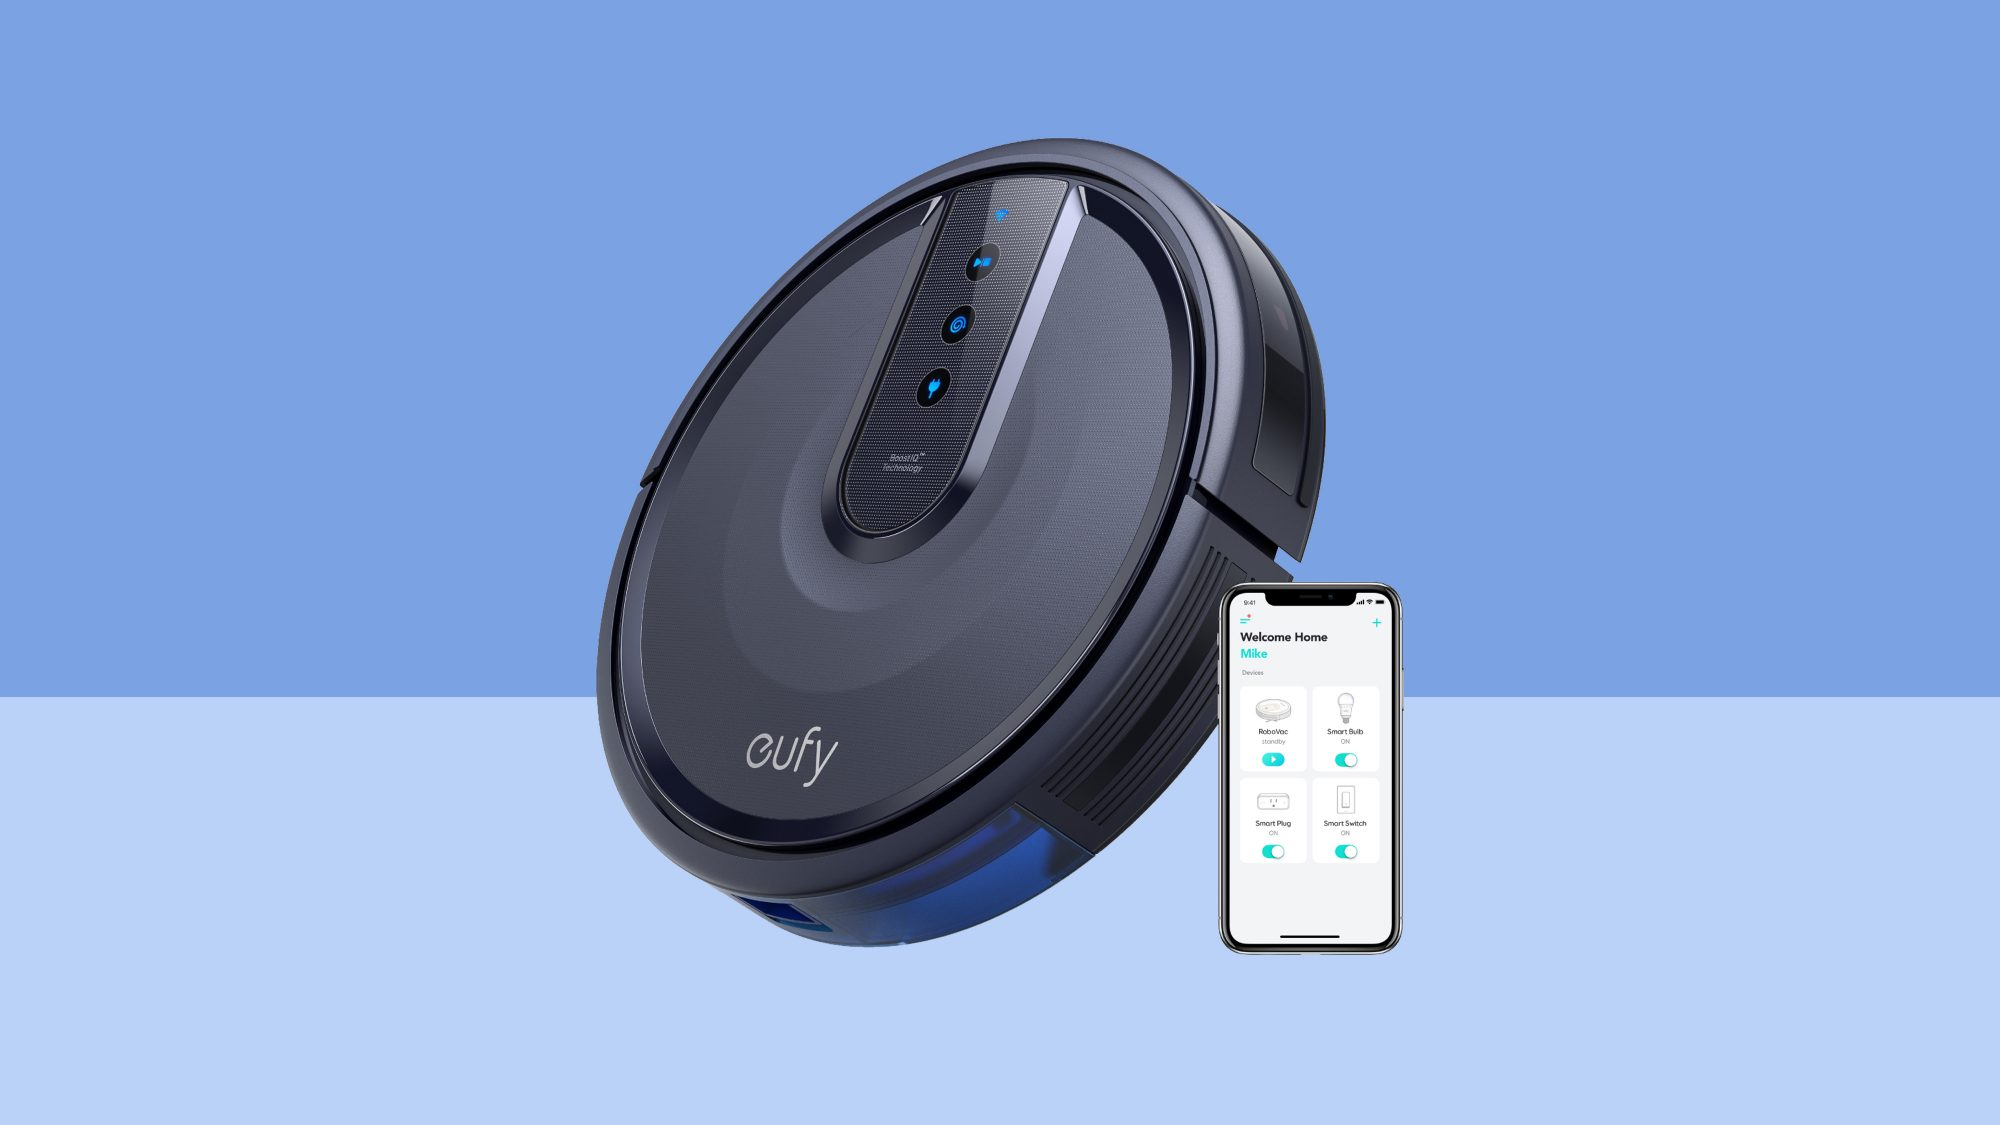 Eufy RoboVac 25C Wi-Fi Connected Robot Vacuum